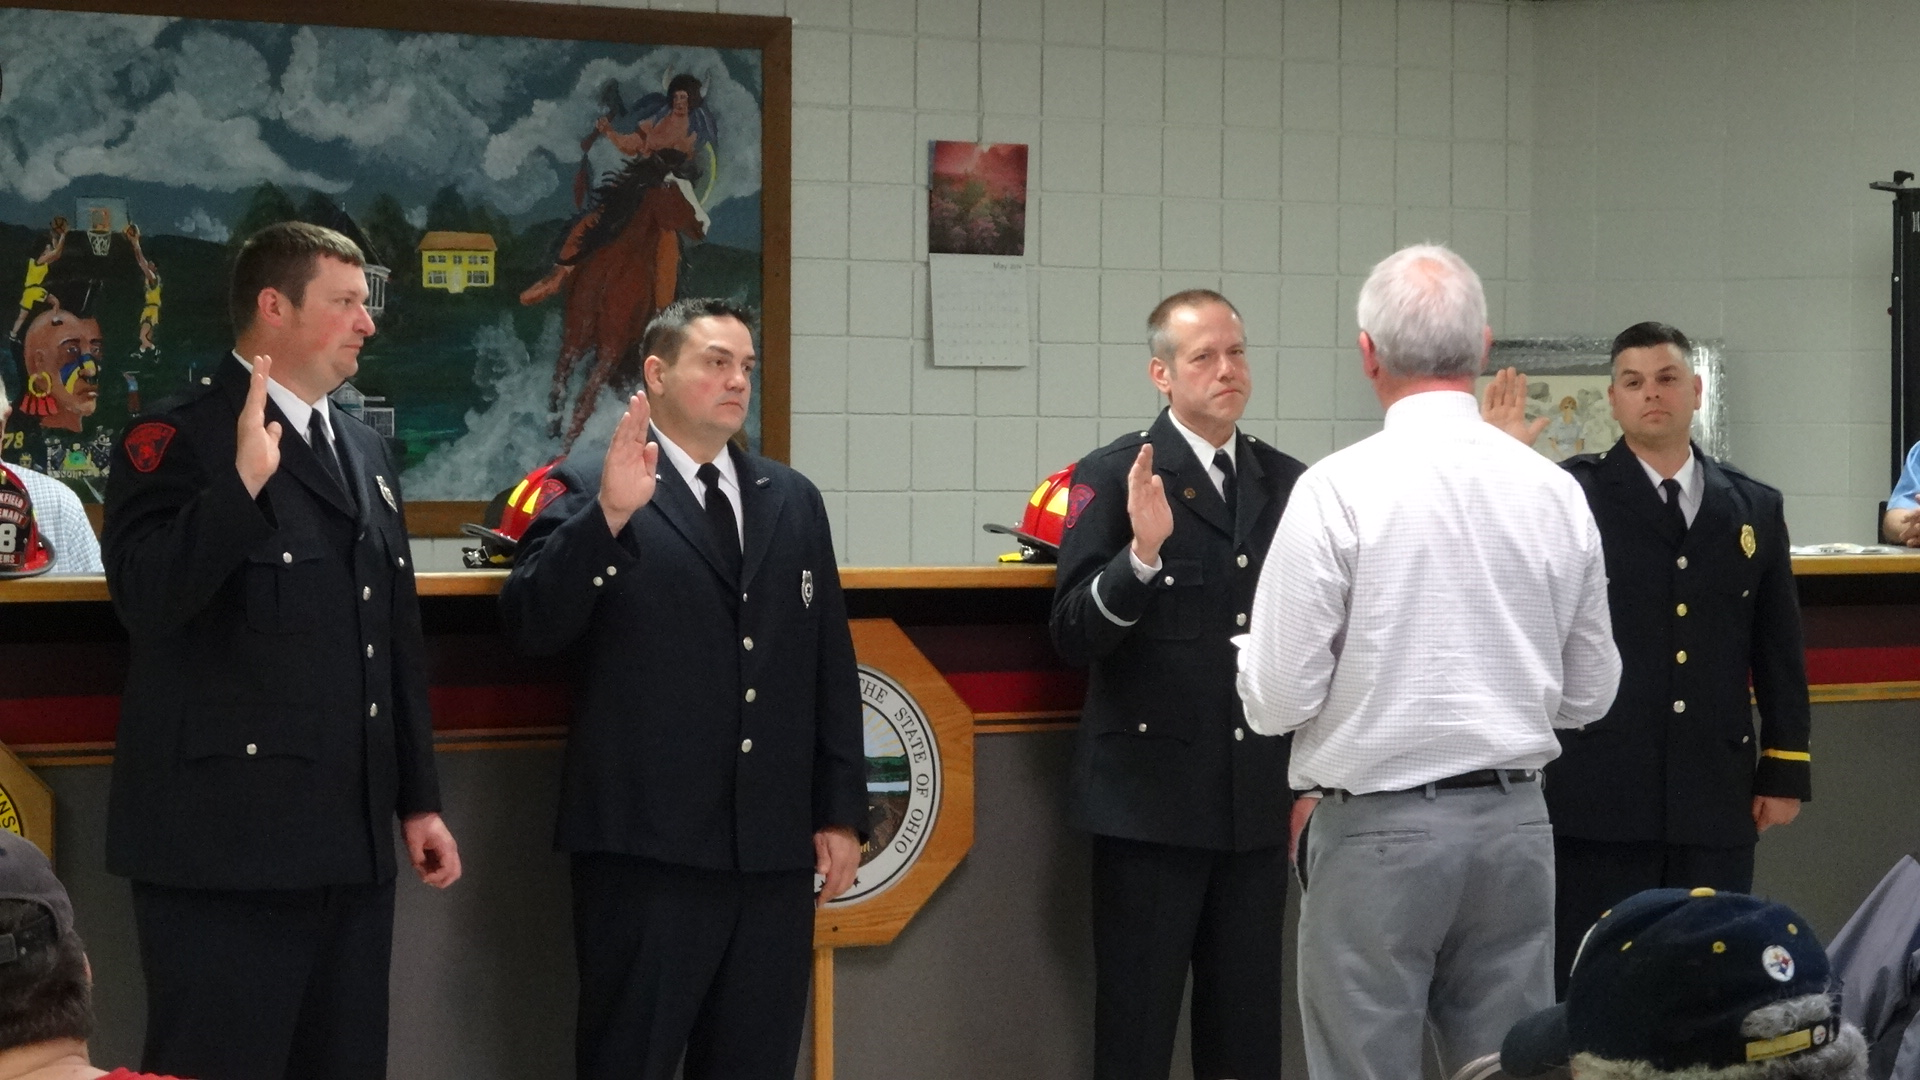 Brookfield Trustee Dan Suttles, whose back is to the camera, administers the oath to newly promoted firefighters, from left, career Lt. Steve Smoot, volunteer Capt. Randy Richman, volunteer Lt. Jim Richmond, and career Capt. Nick Cresanto.